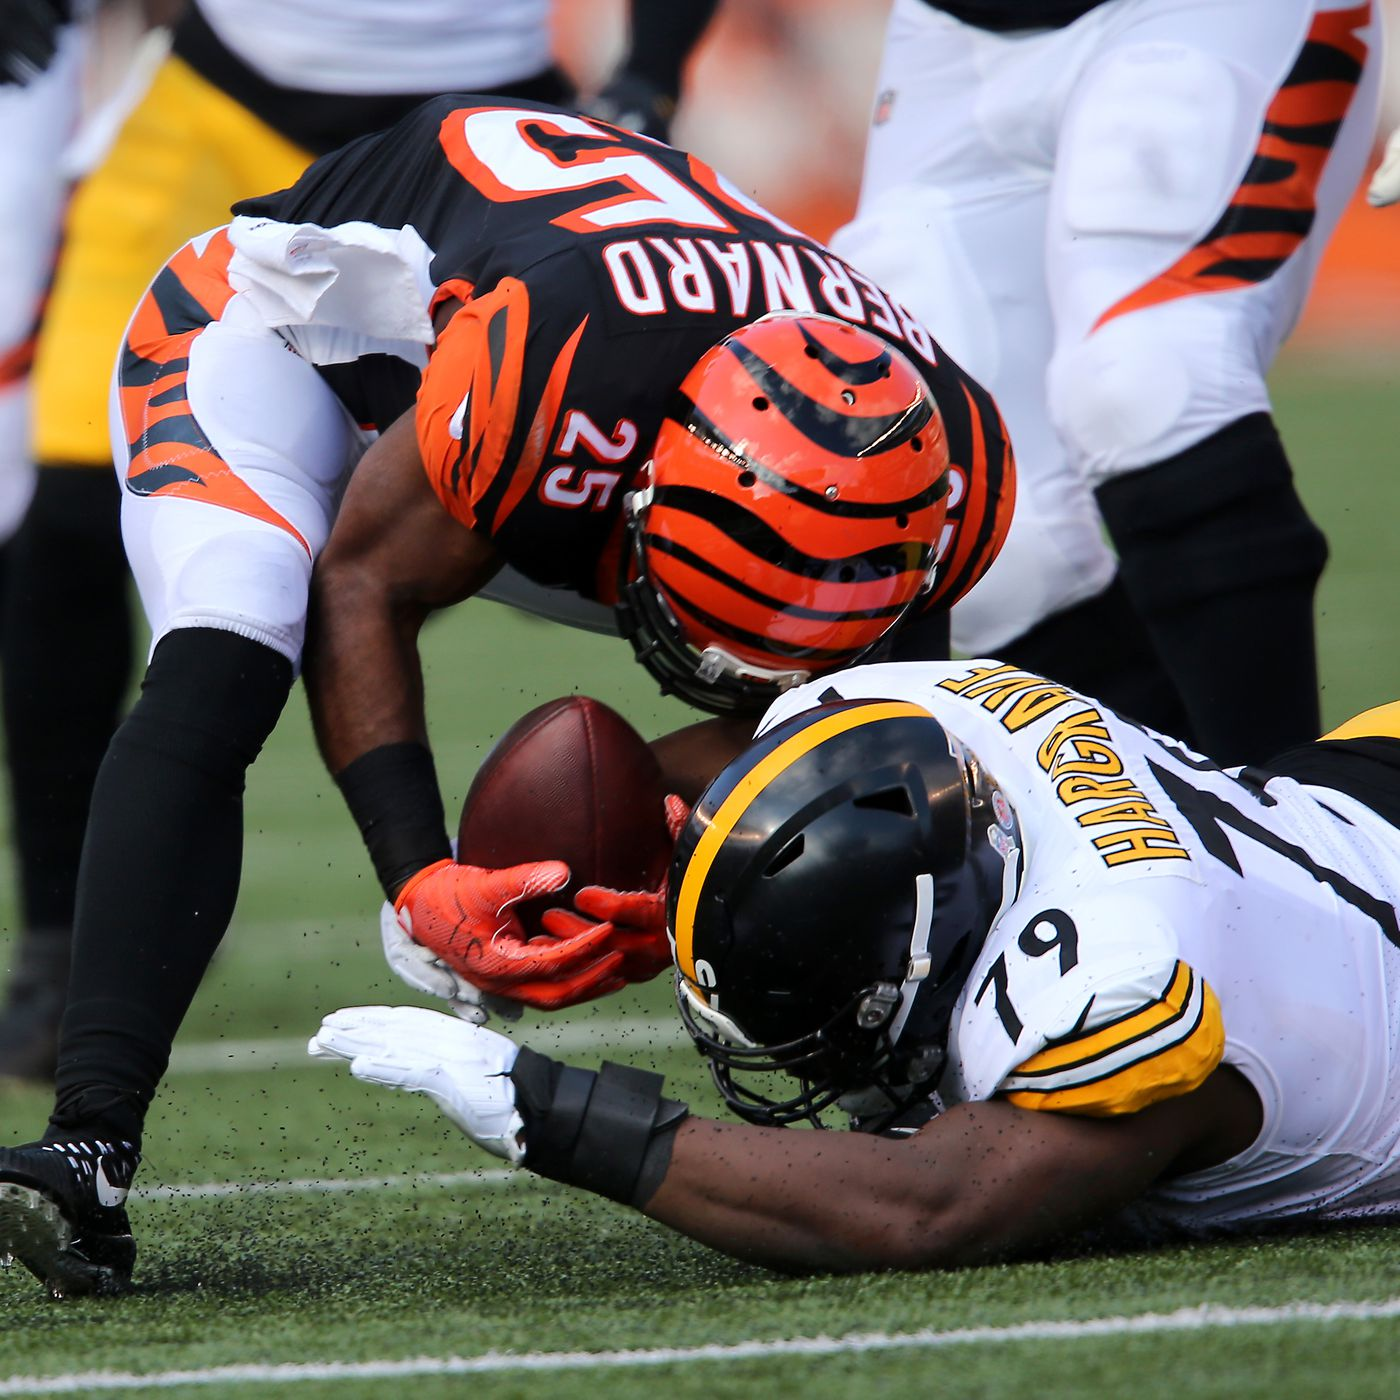 Steelers Vs Bengals Week 12 2nd Quarter Live In Game